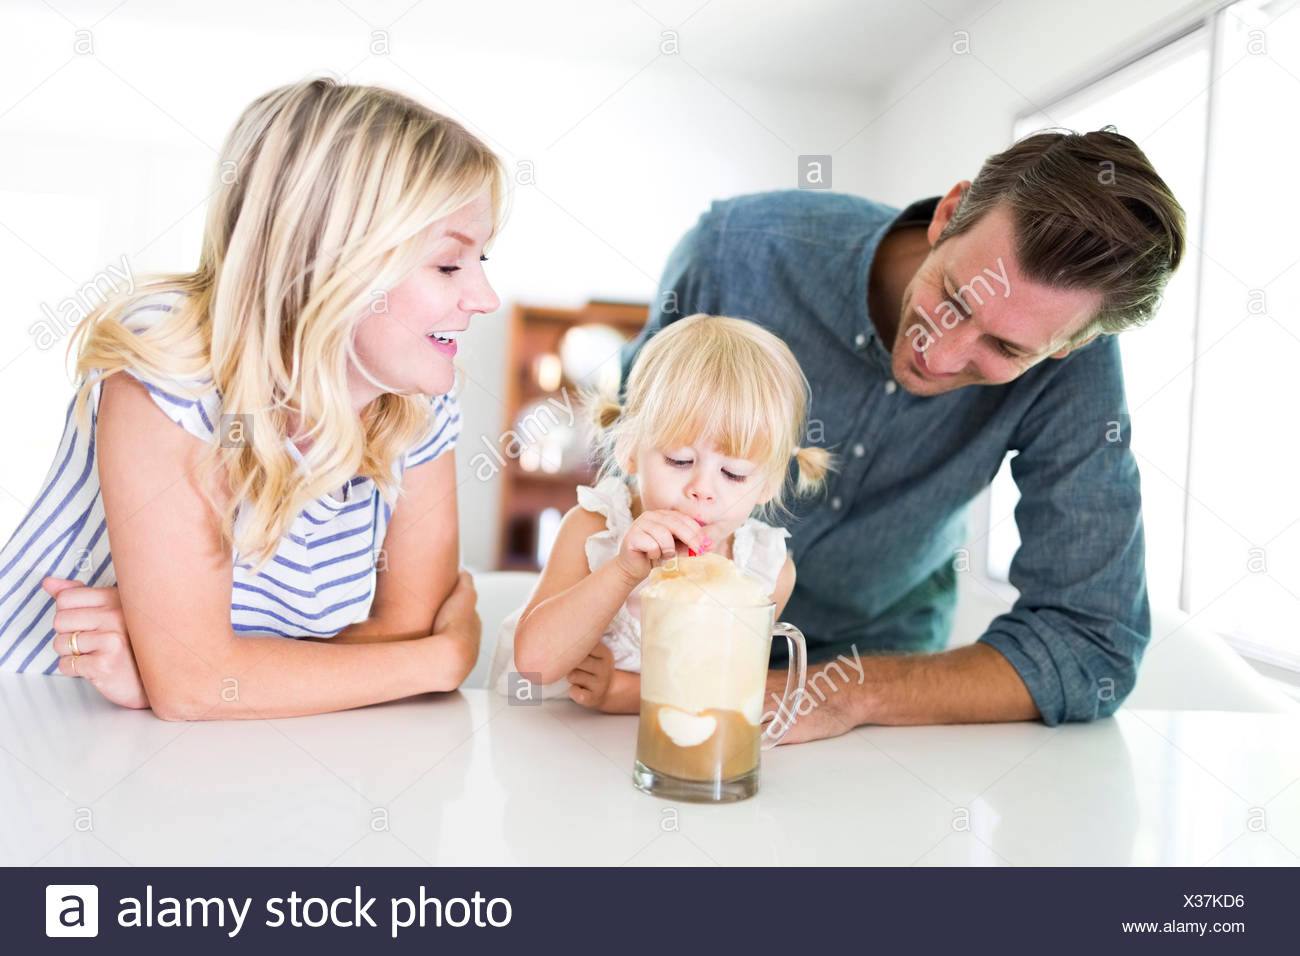 Girl (2-3) drinking milkshake with parents at home - Stock Image